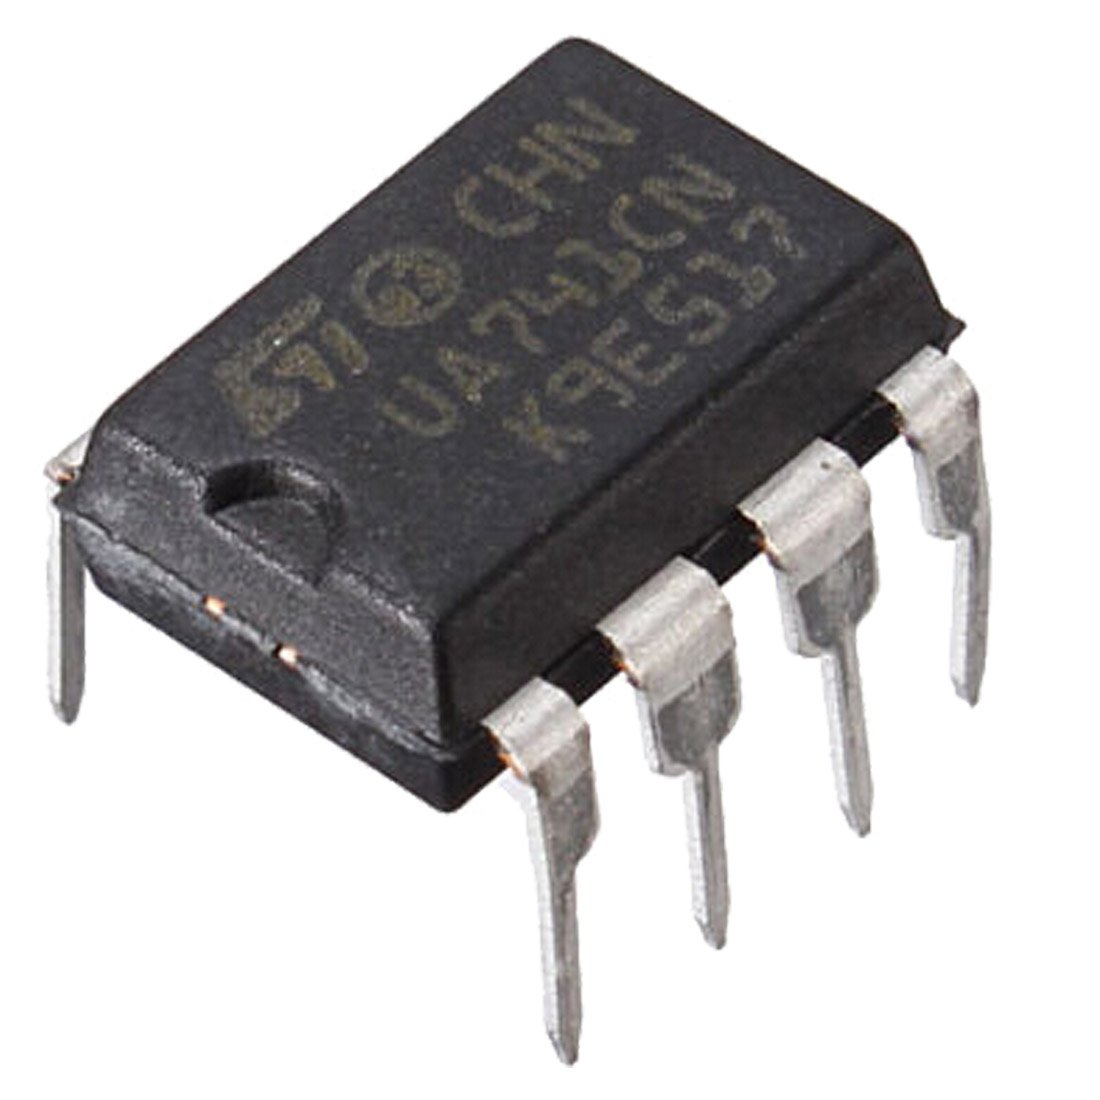 10pcs Ua741cn Dip 8 Ua741 Lm741 Operational Amplifiers Automatic Timer Switch With Electronic Projects Circuits Op Amp Ic Cell Phones Accessories